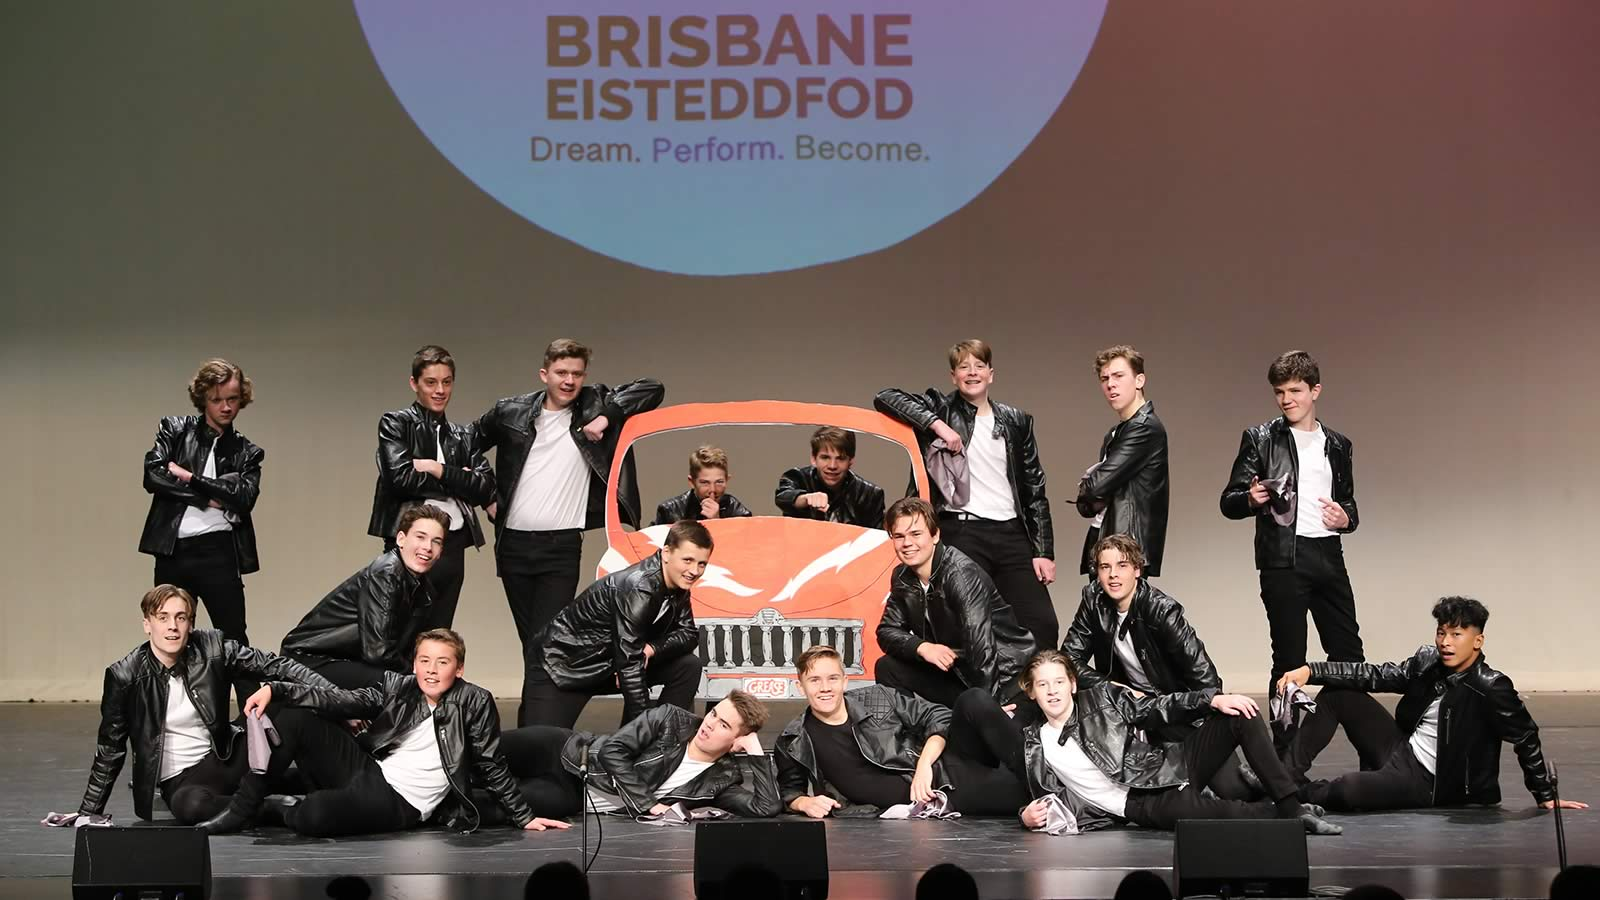 Senior Dance Troupe at The Brisbane Eisteddfod 2019.